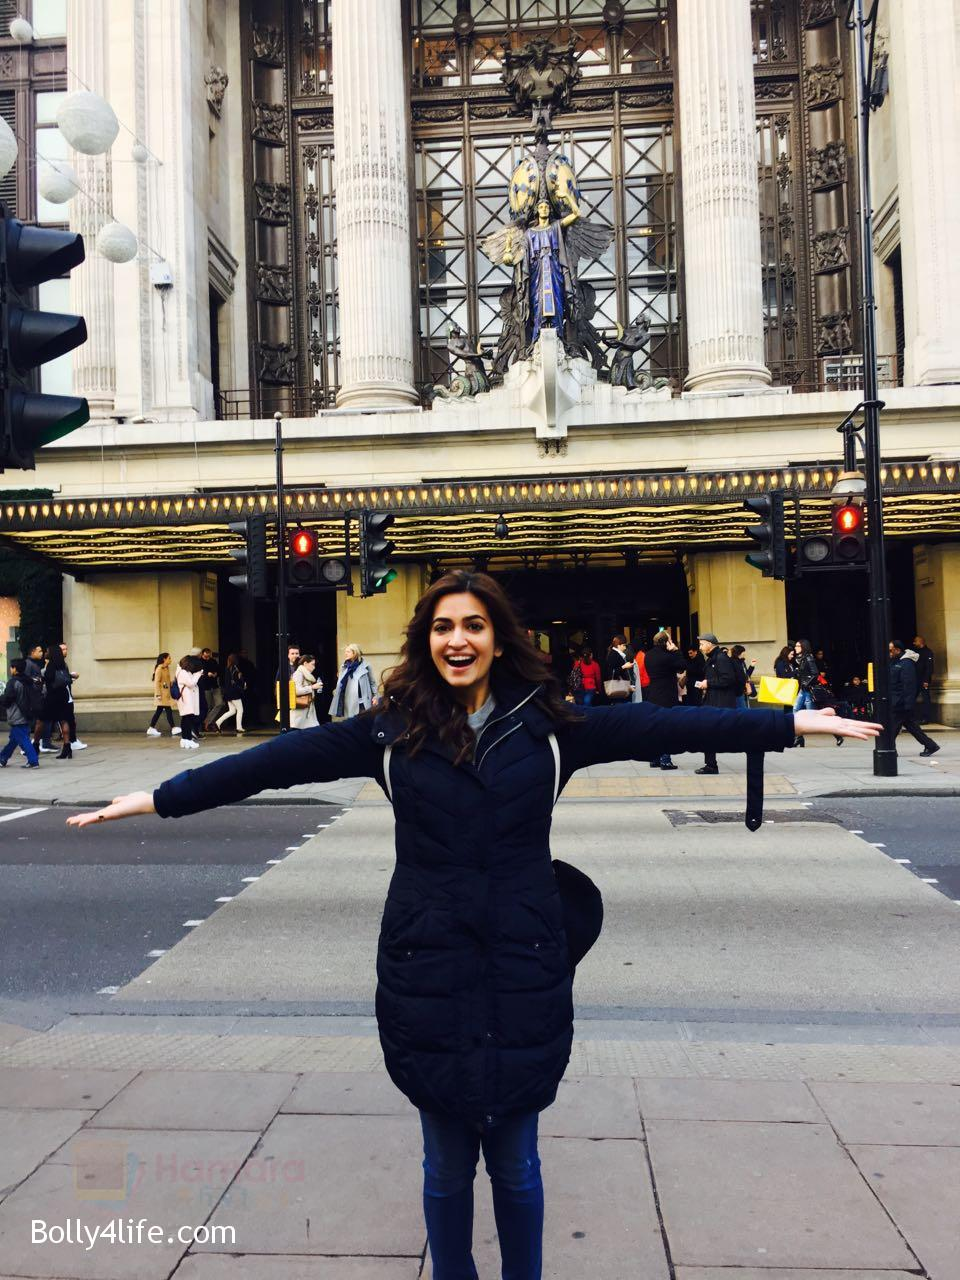 Kriti-Kharbanda-spotted-in-London-while-shooting-for-Atithii-in-London-on-26th-Oct-2016-4.jpg